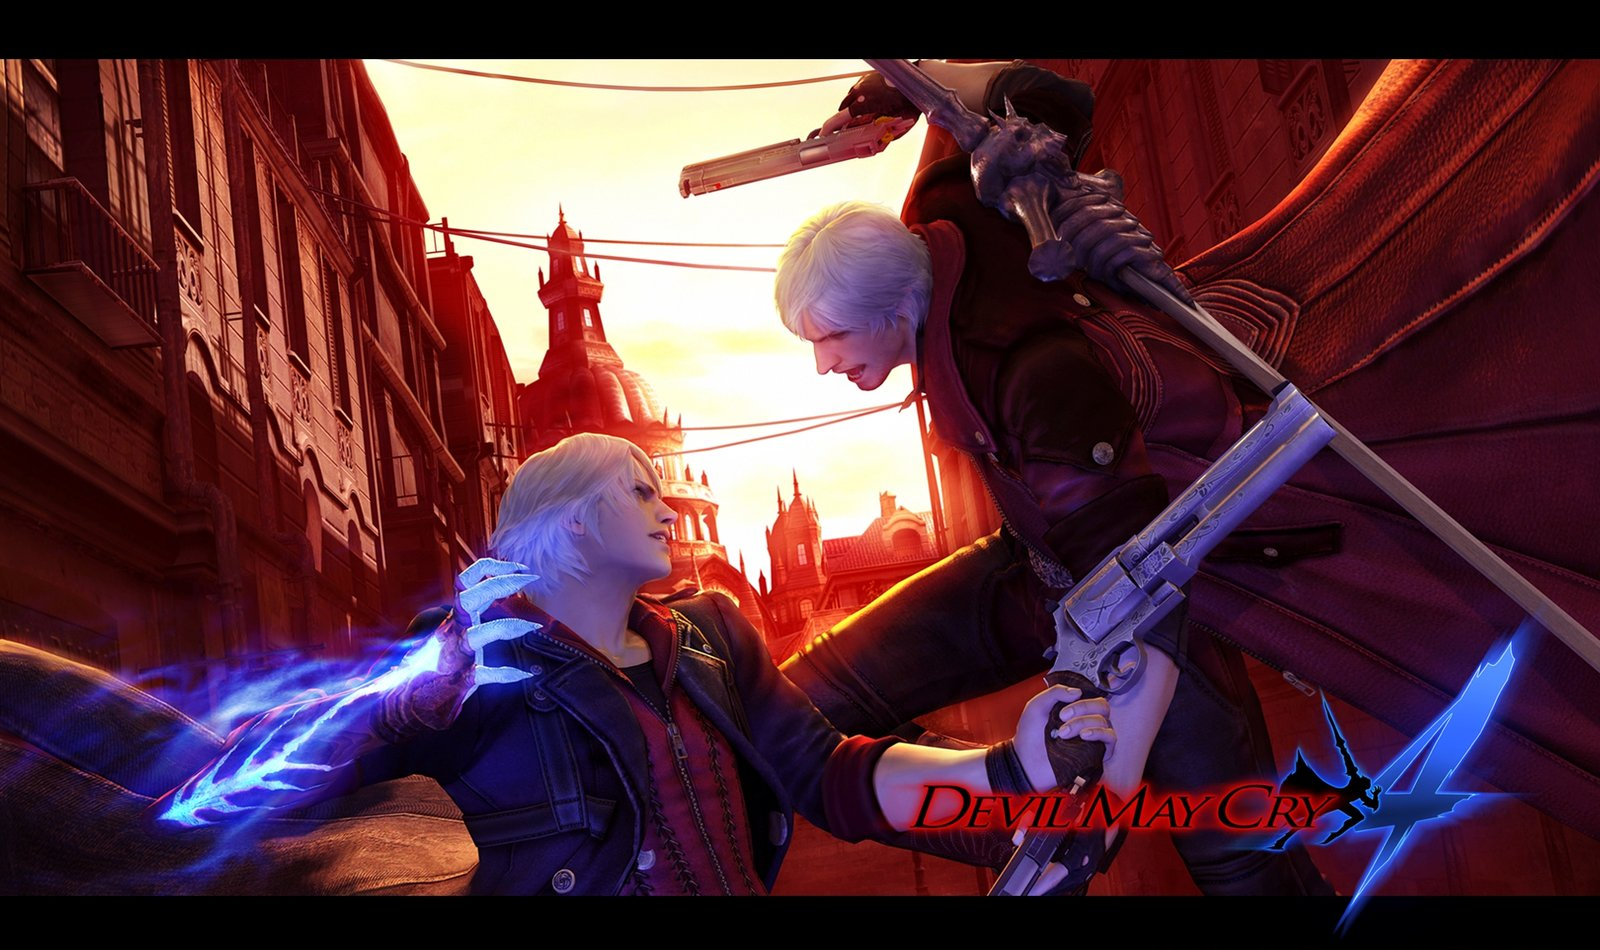 Dmc4 Nero Calle Fight Dante Por Leodheme Devil May Cry 4